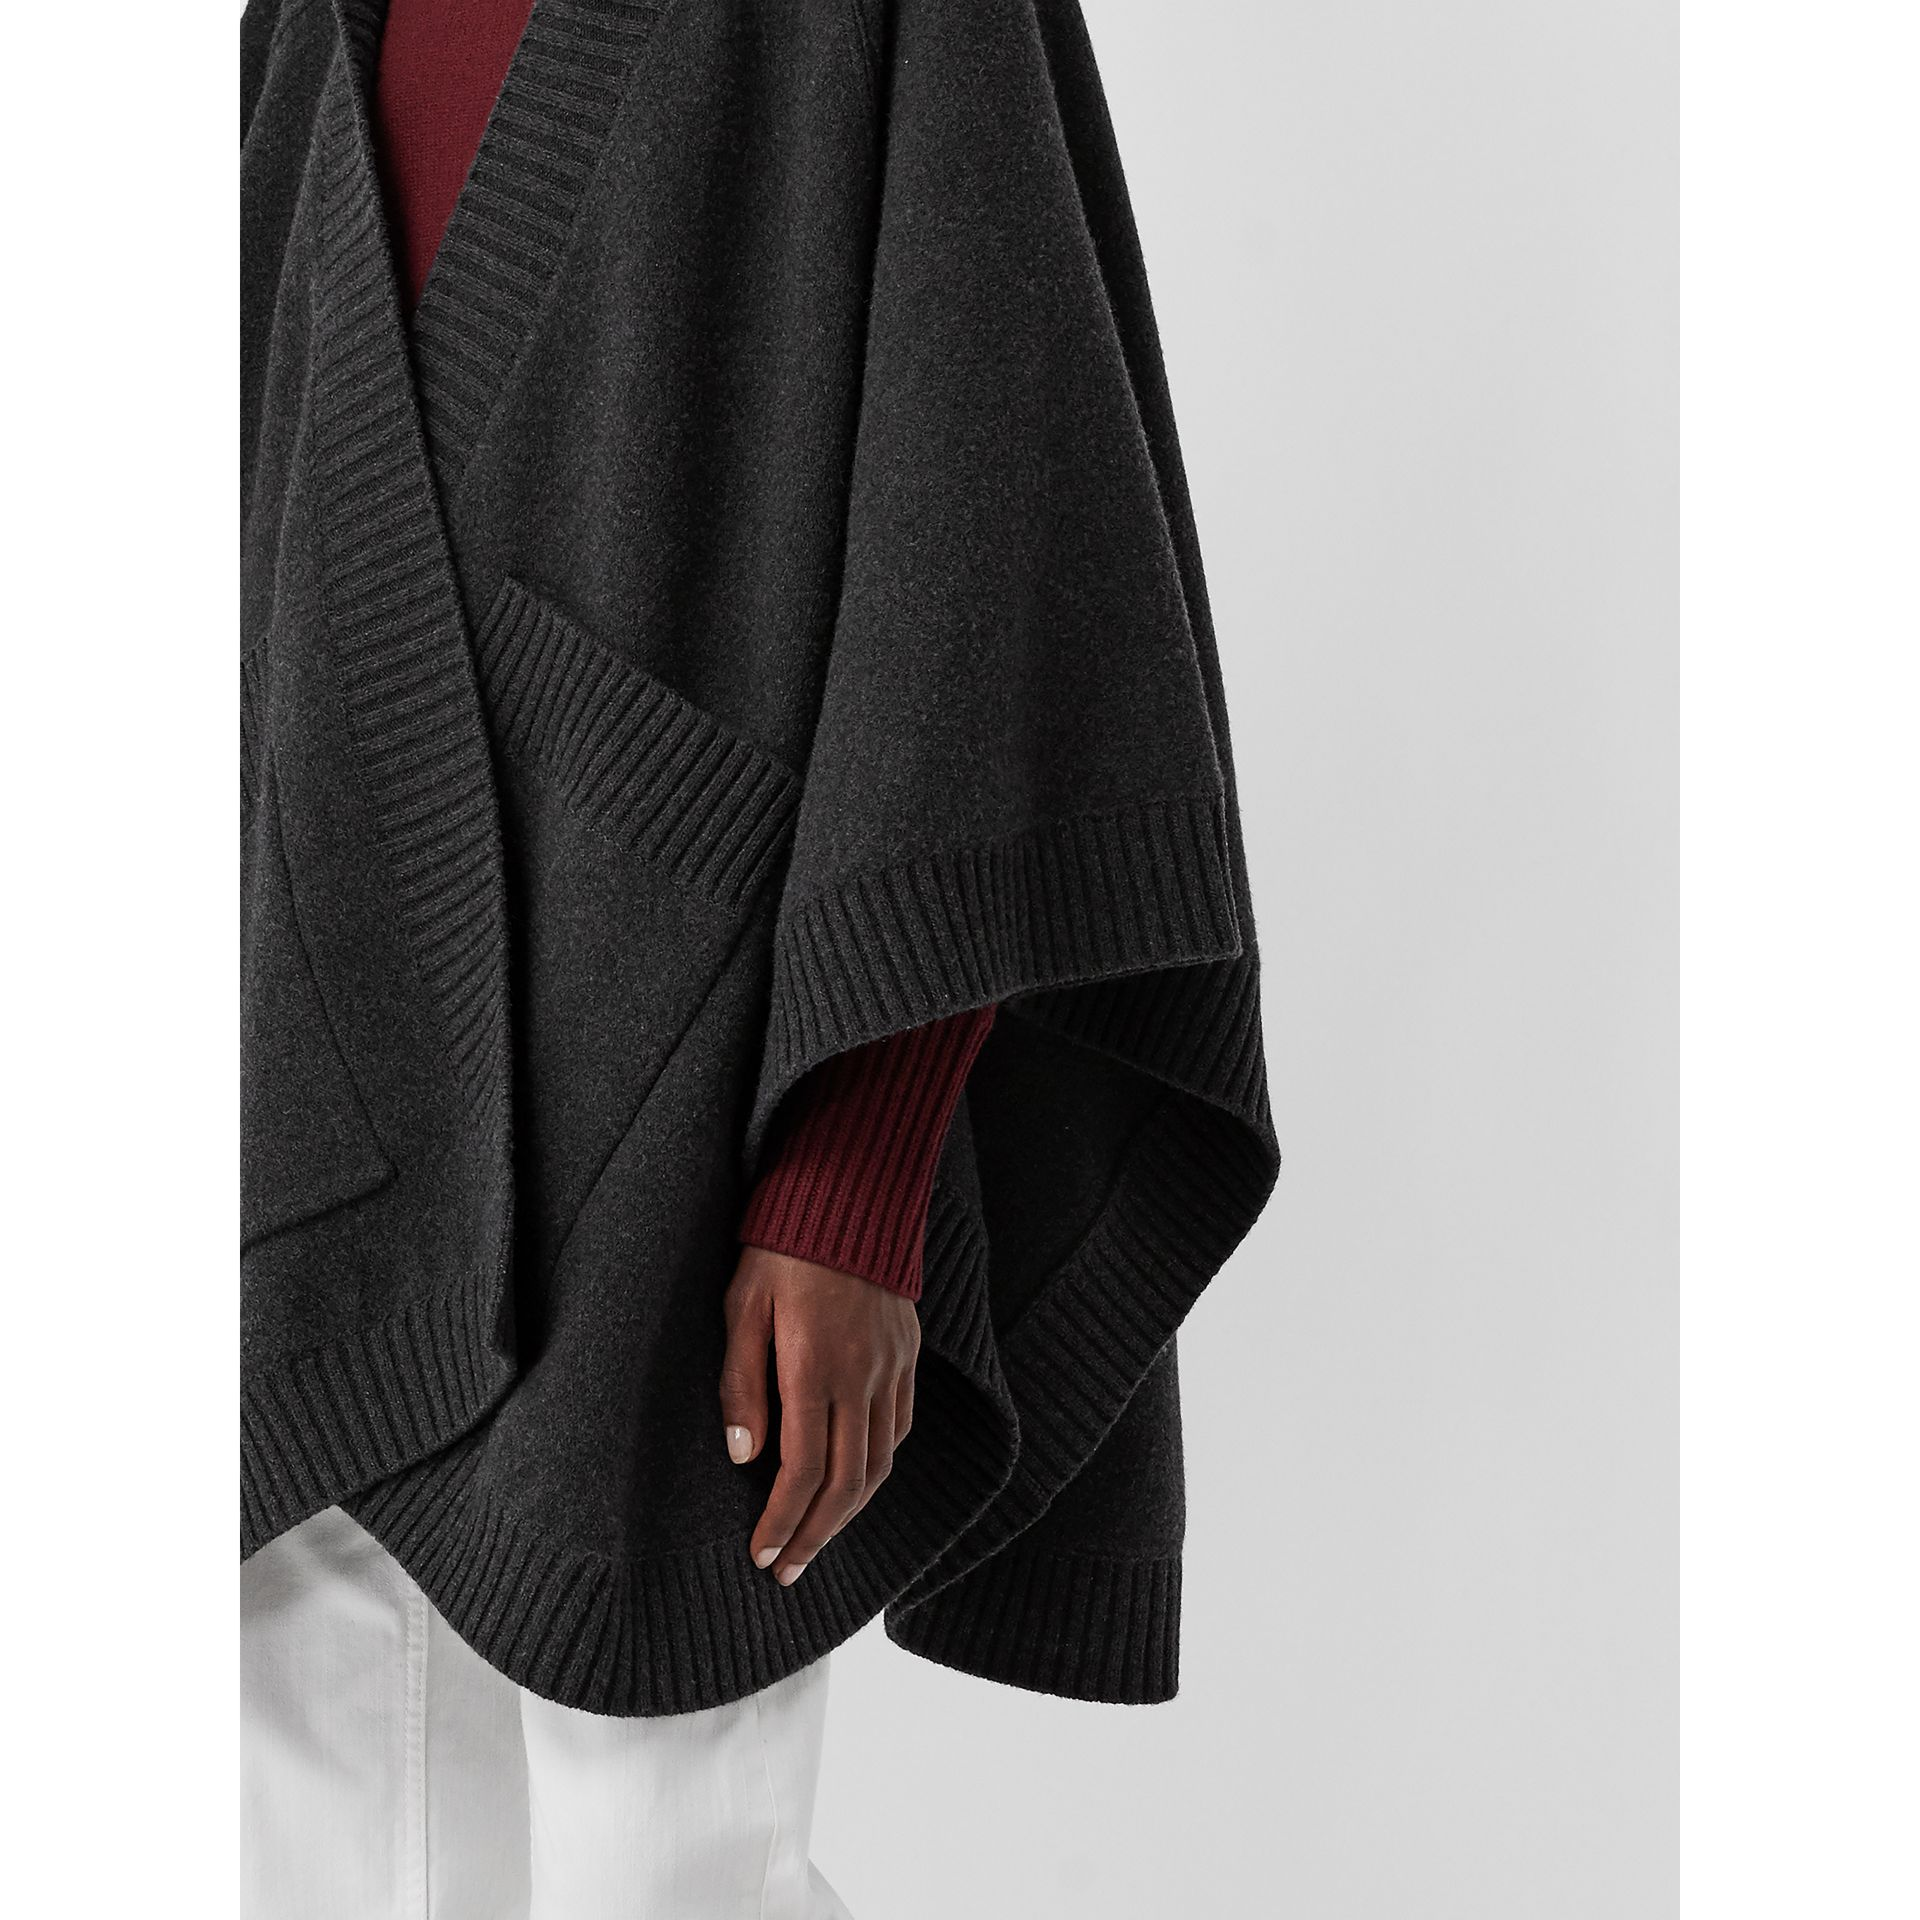 Crest Wool Blend Jacquard Hooded Cape in Charcoal - Women | Burberry United Kingdom - gallery image 1